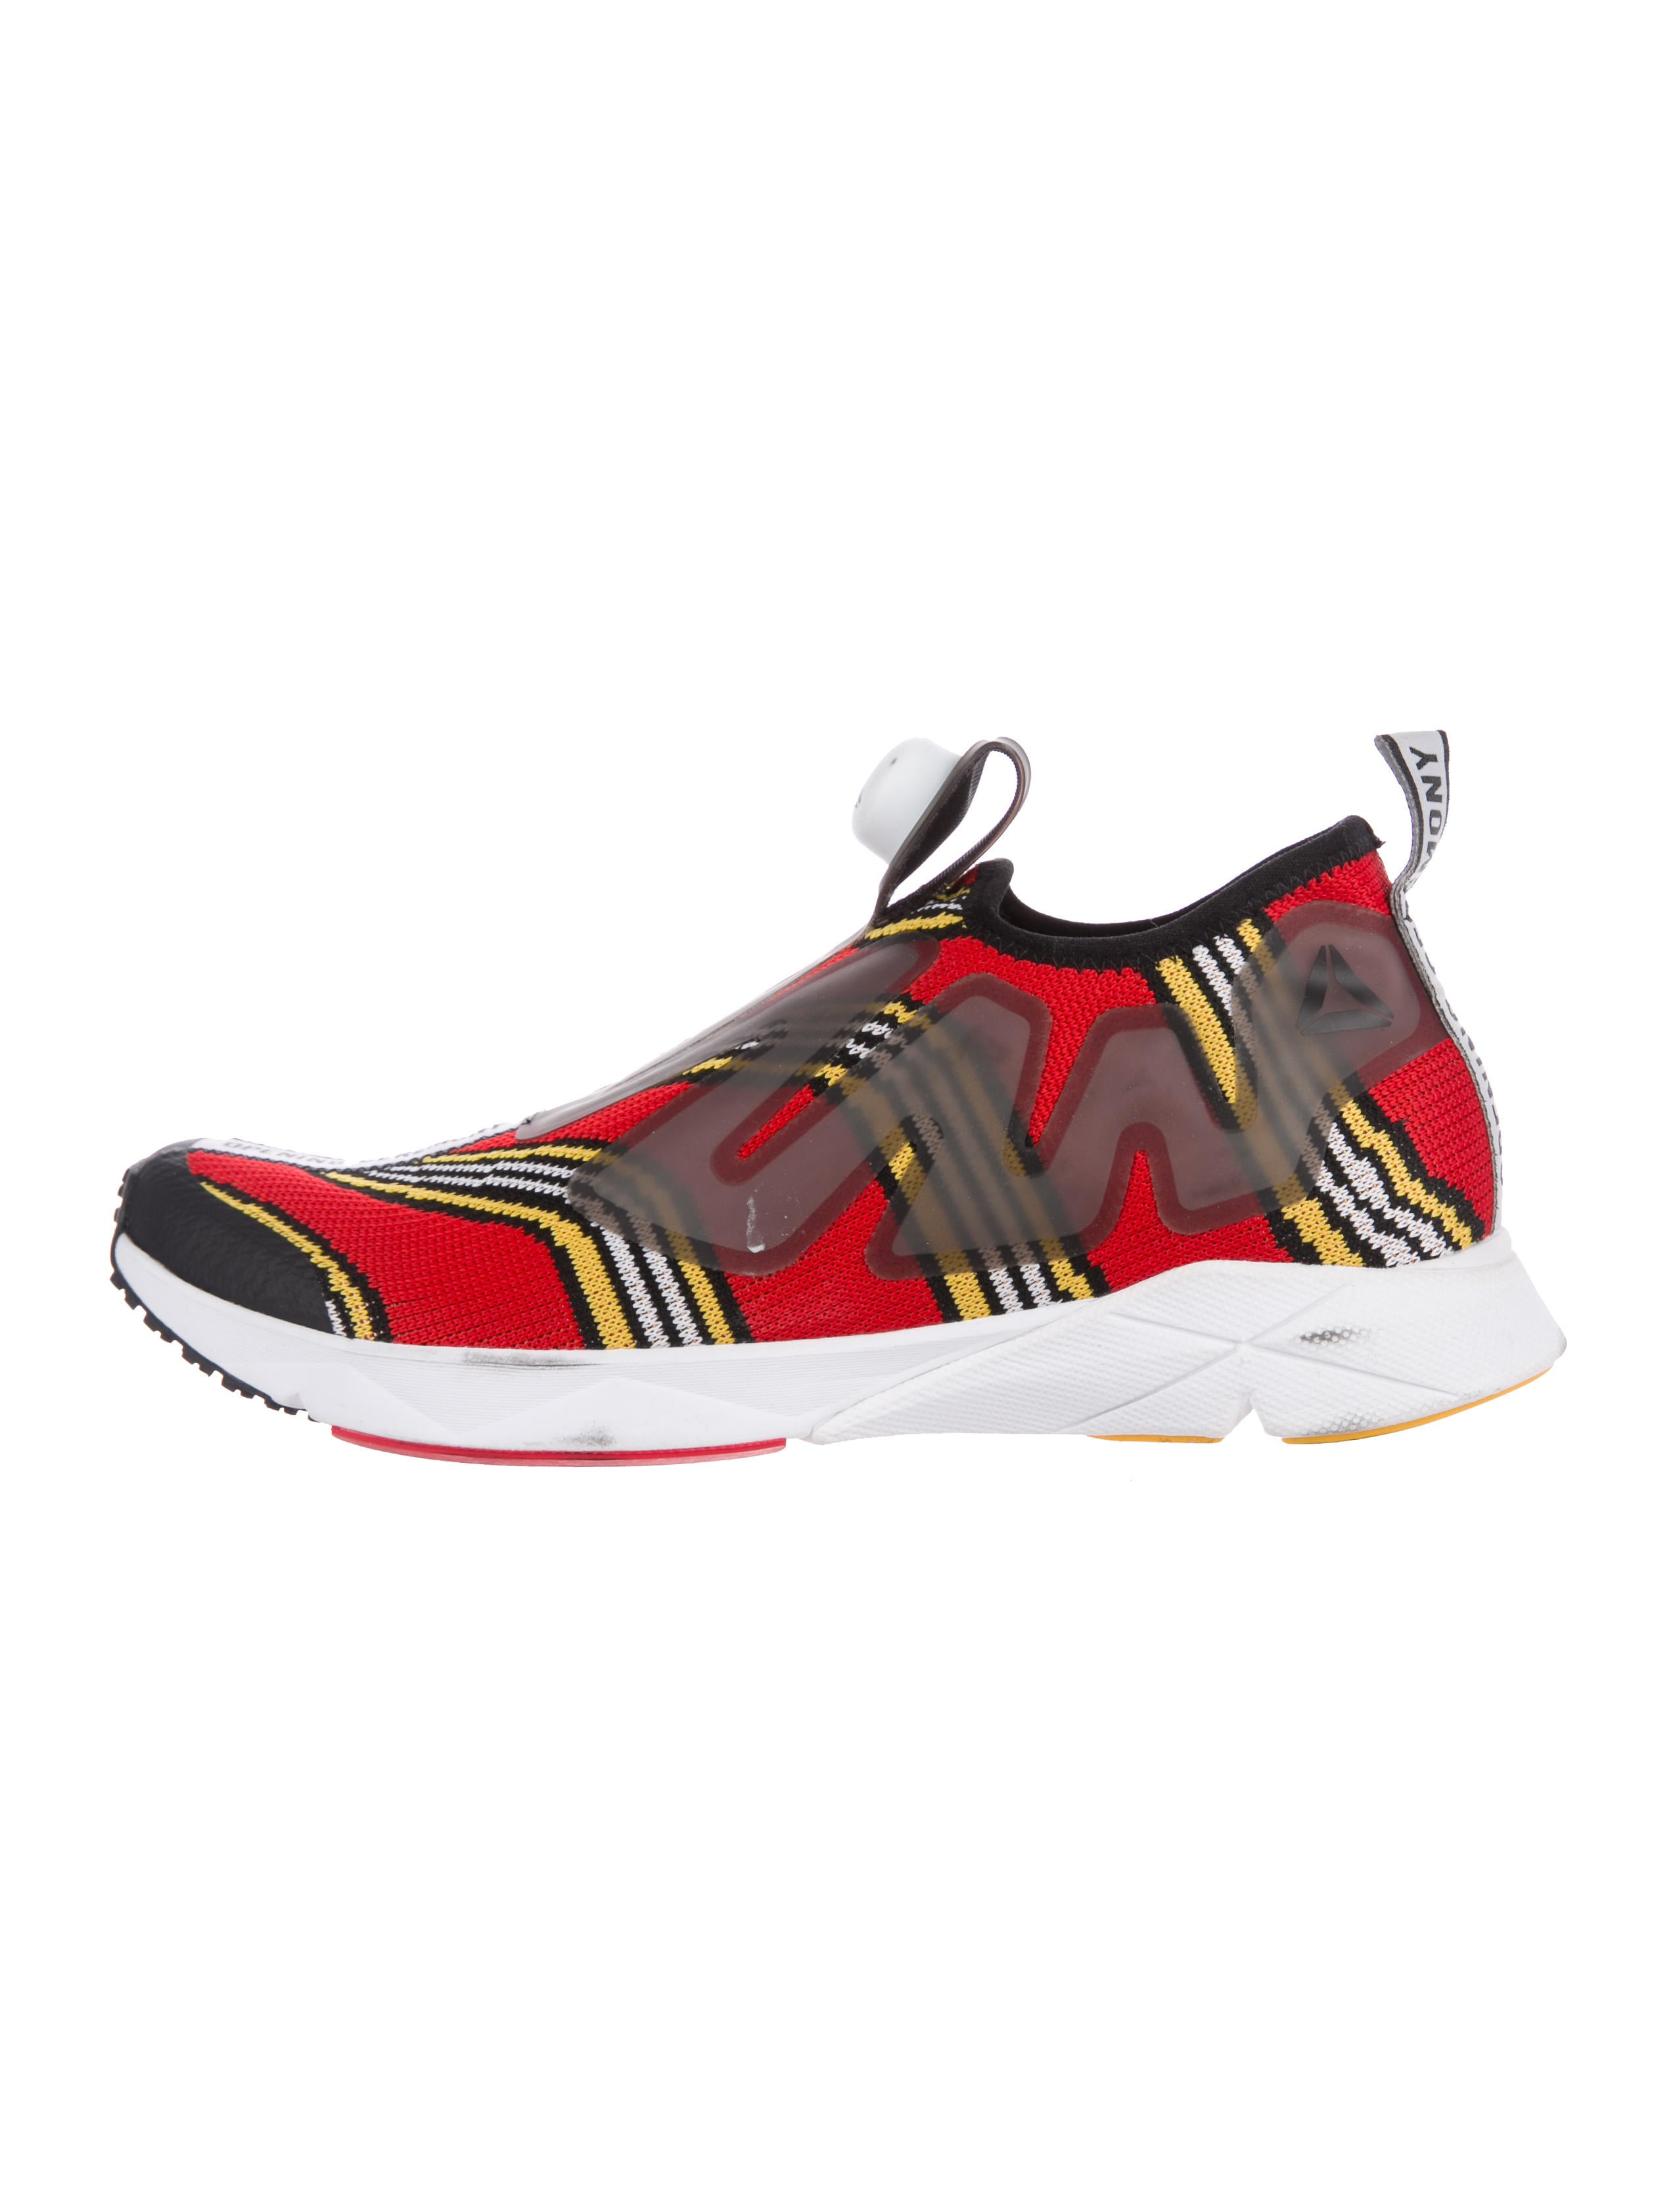 234ed0a3deee2b Reebok x Opening Ceremony Pump Supreme OC Sneakers - Shoes ...